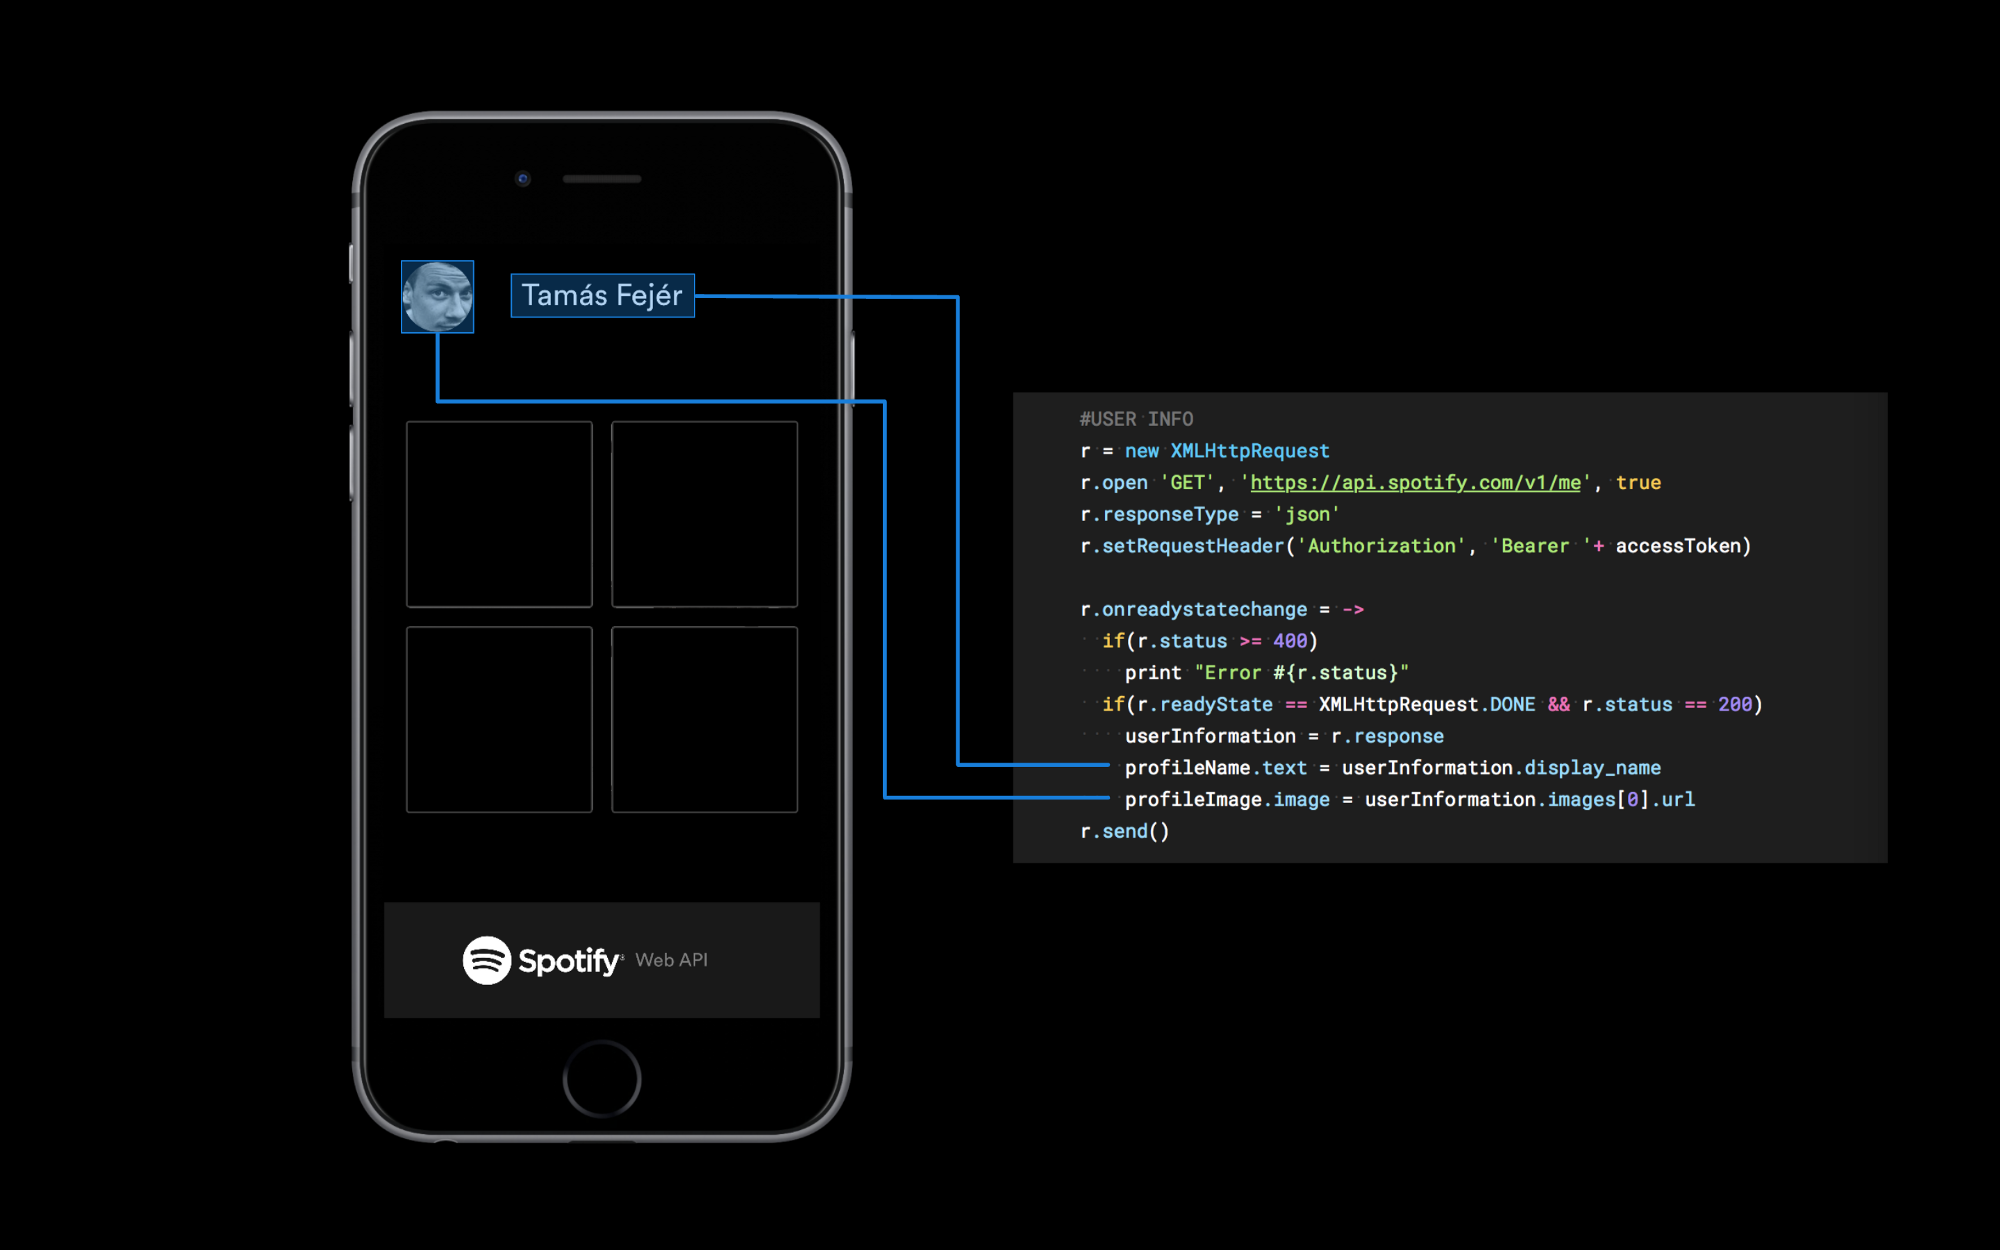 Have you heard about the Spotify web API? - Prototypr